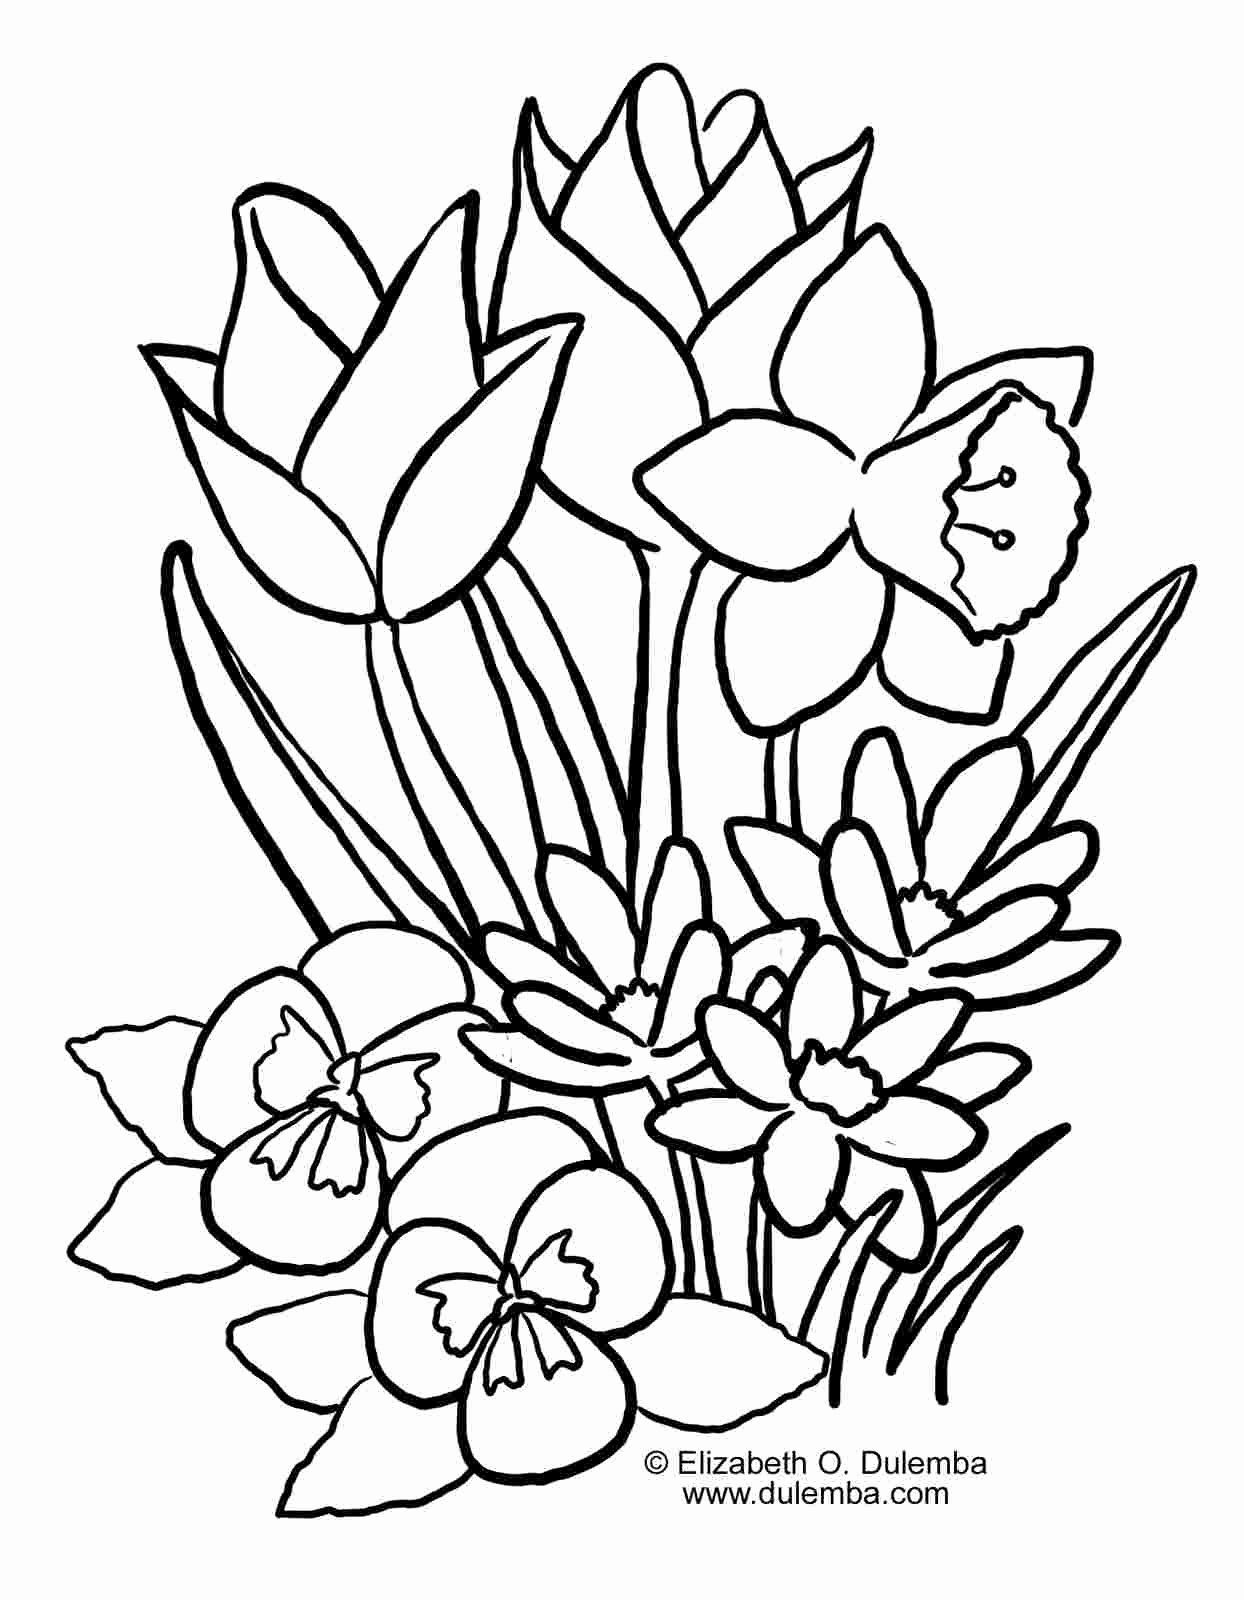 Spring Themed Coloring Pages Awesome Coloring Pages Gorjuss Santoro Spring Bright Spring Coloring Sheets Flower Coloring Sheets Printable Flower Coloring Pages